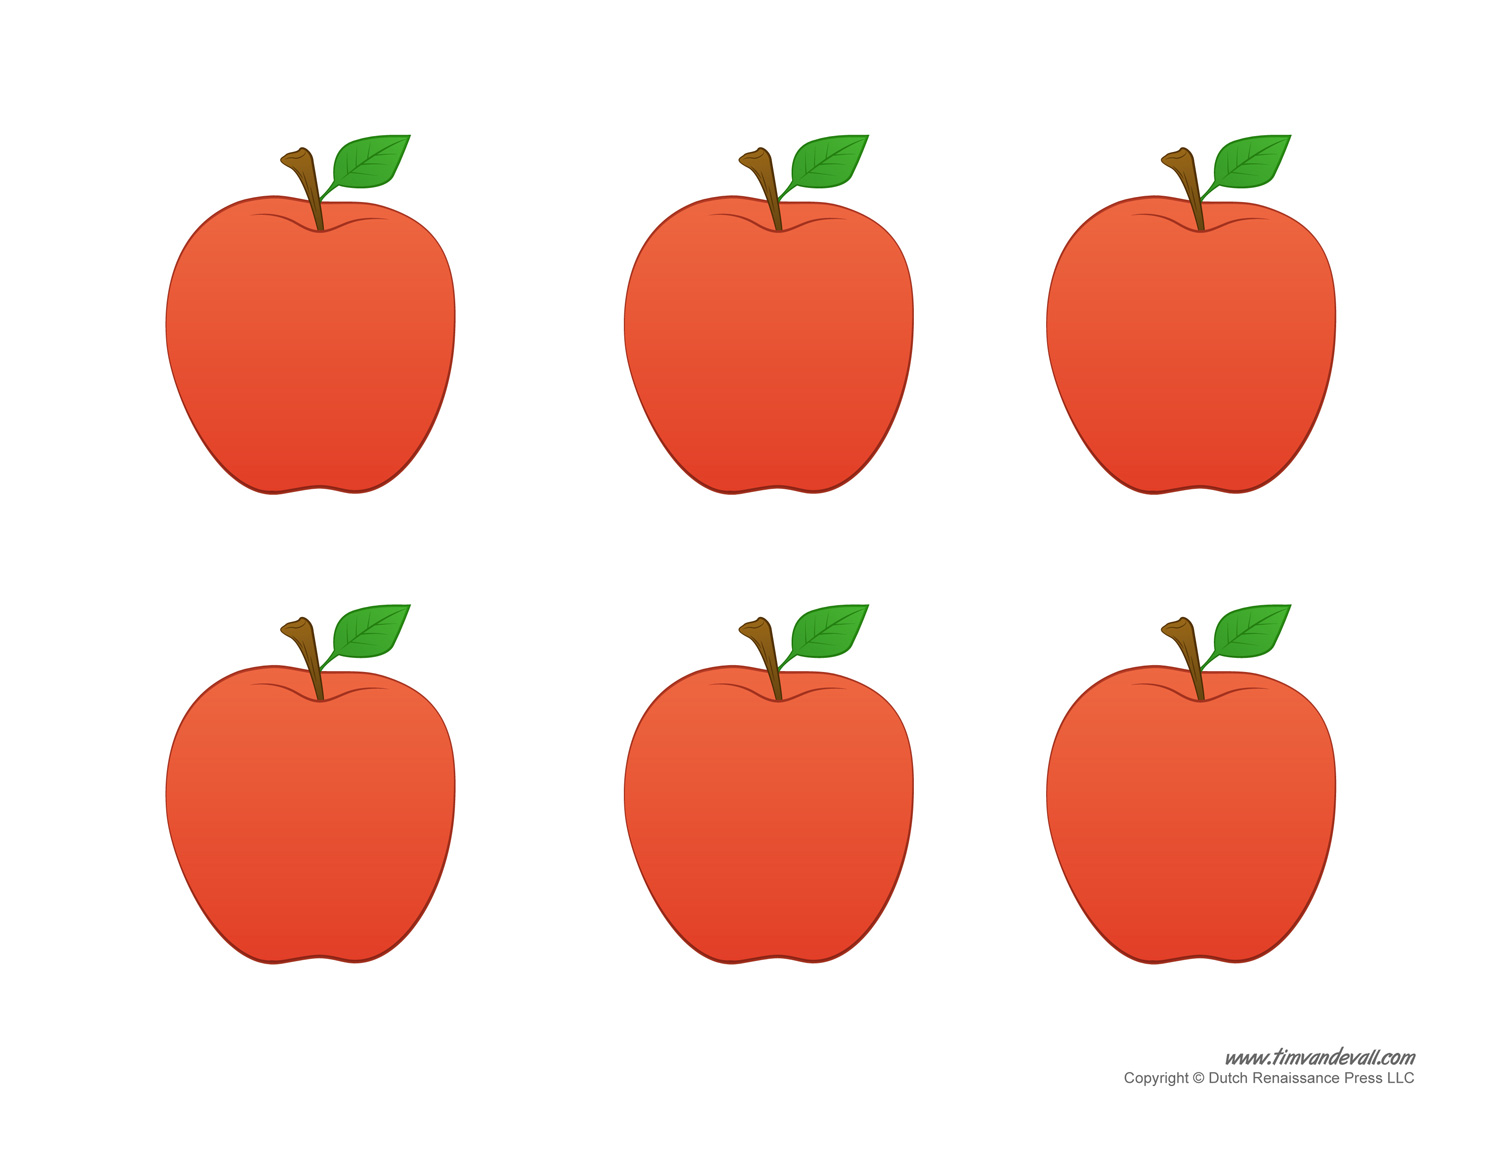 grocery list template for mac - printable apple templates to make apple crafts for preschool